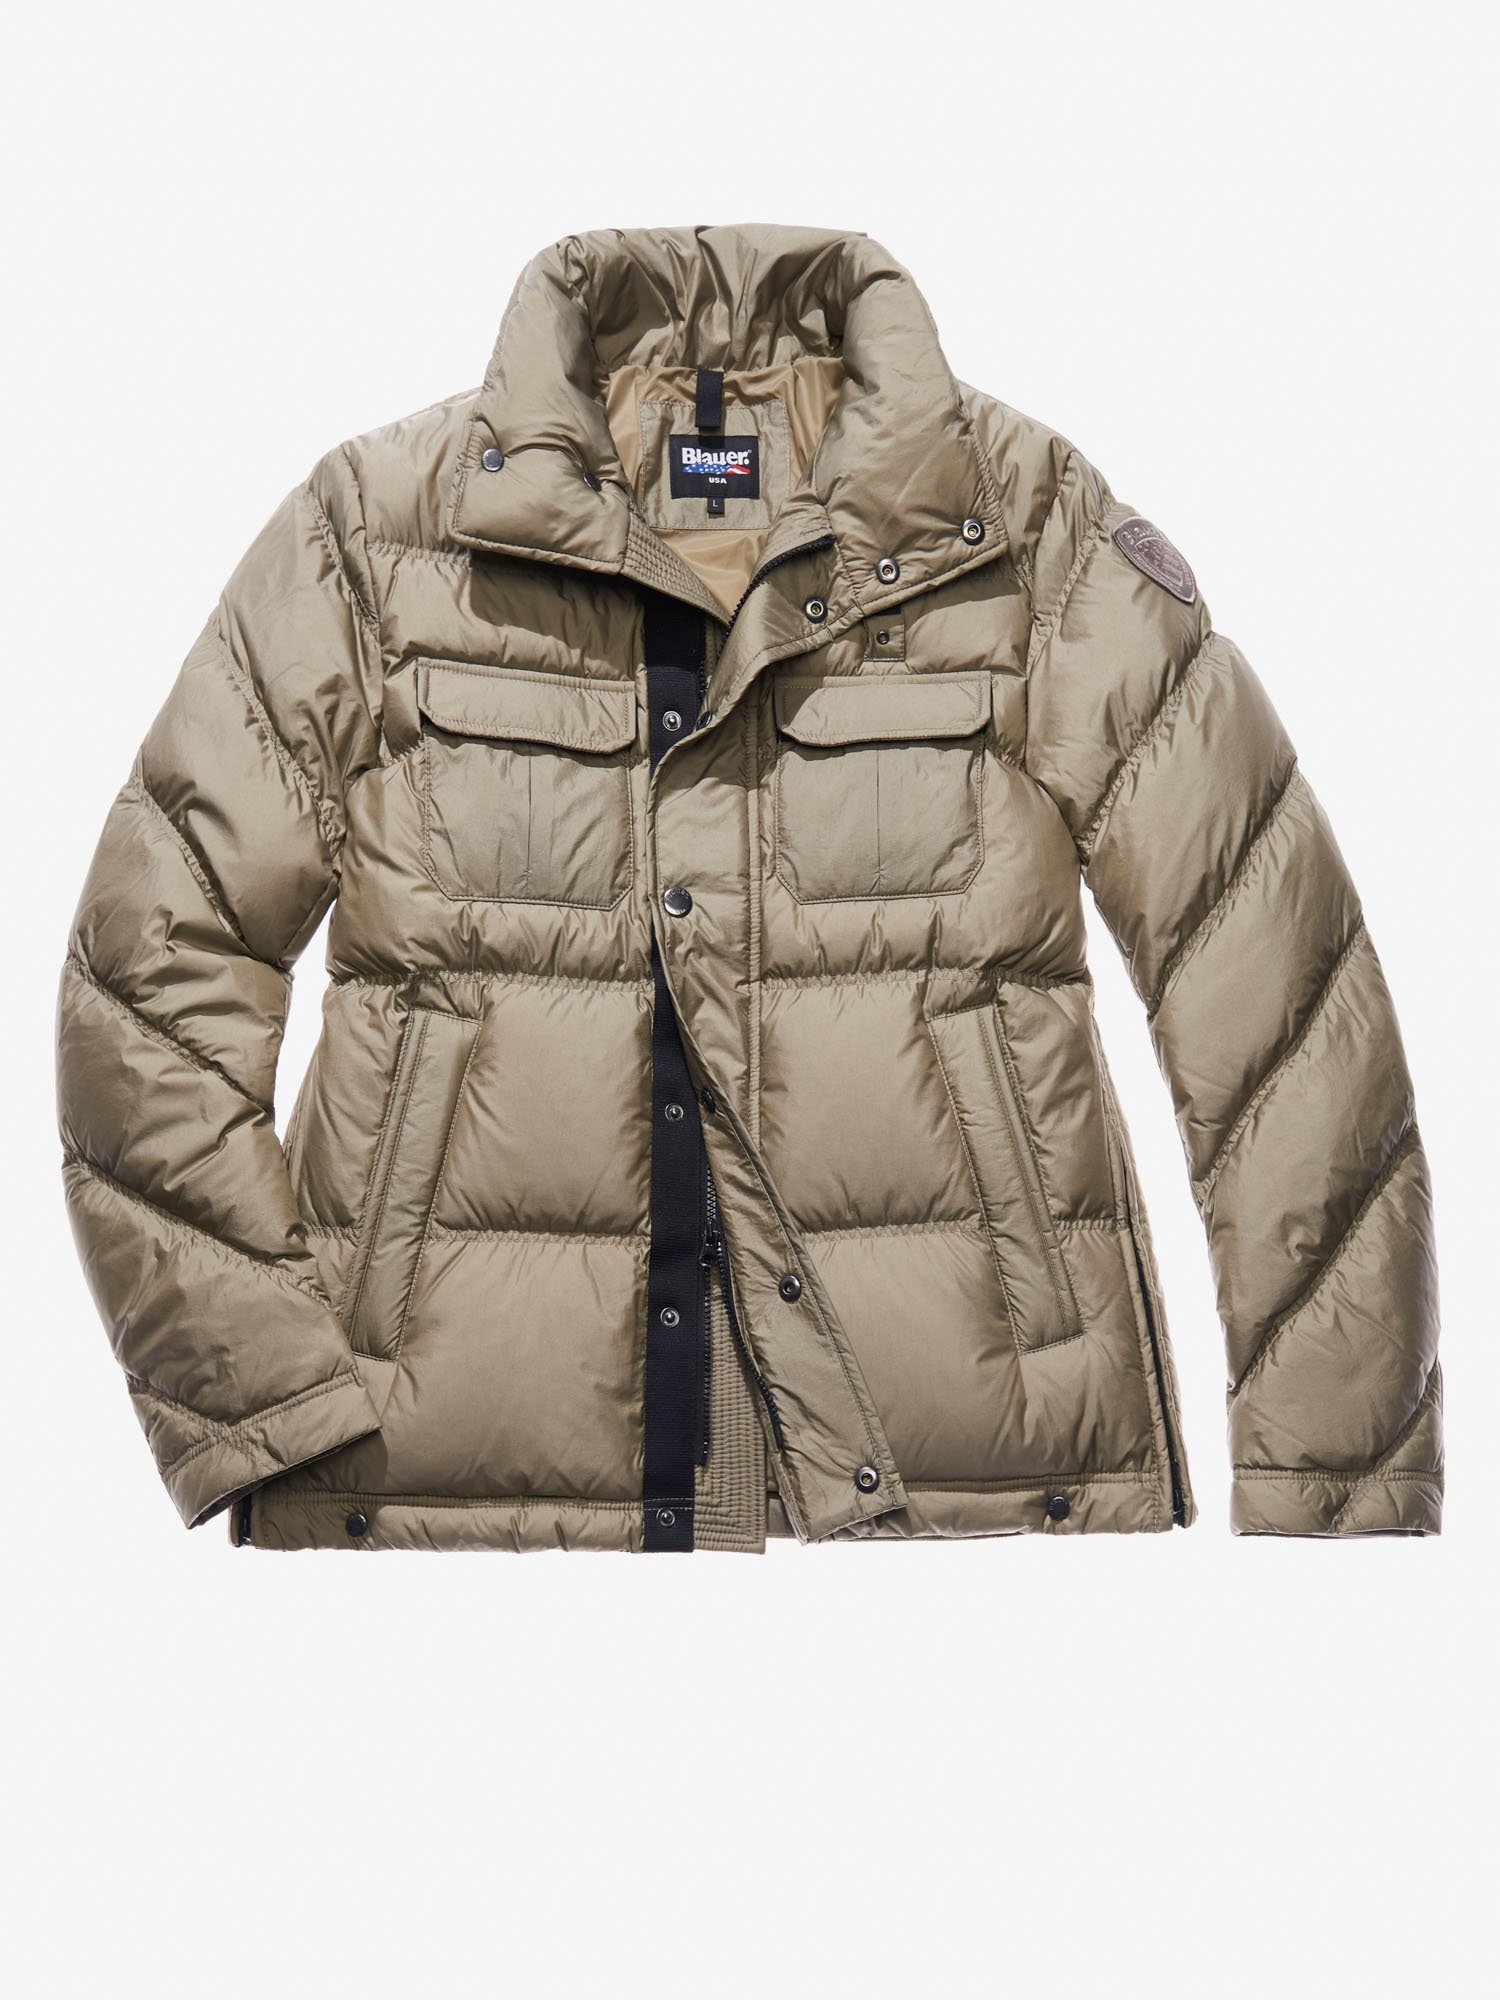 Blauer - GIOVANNI FOUR-POCKET POLICE-STYLE DOWN JACKET - Green Lichen - Blauer